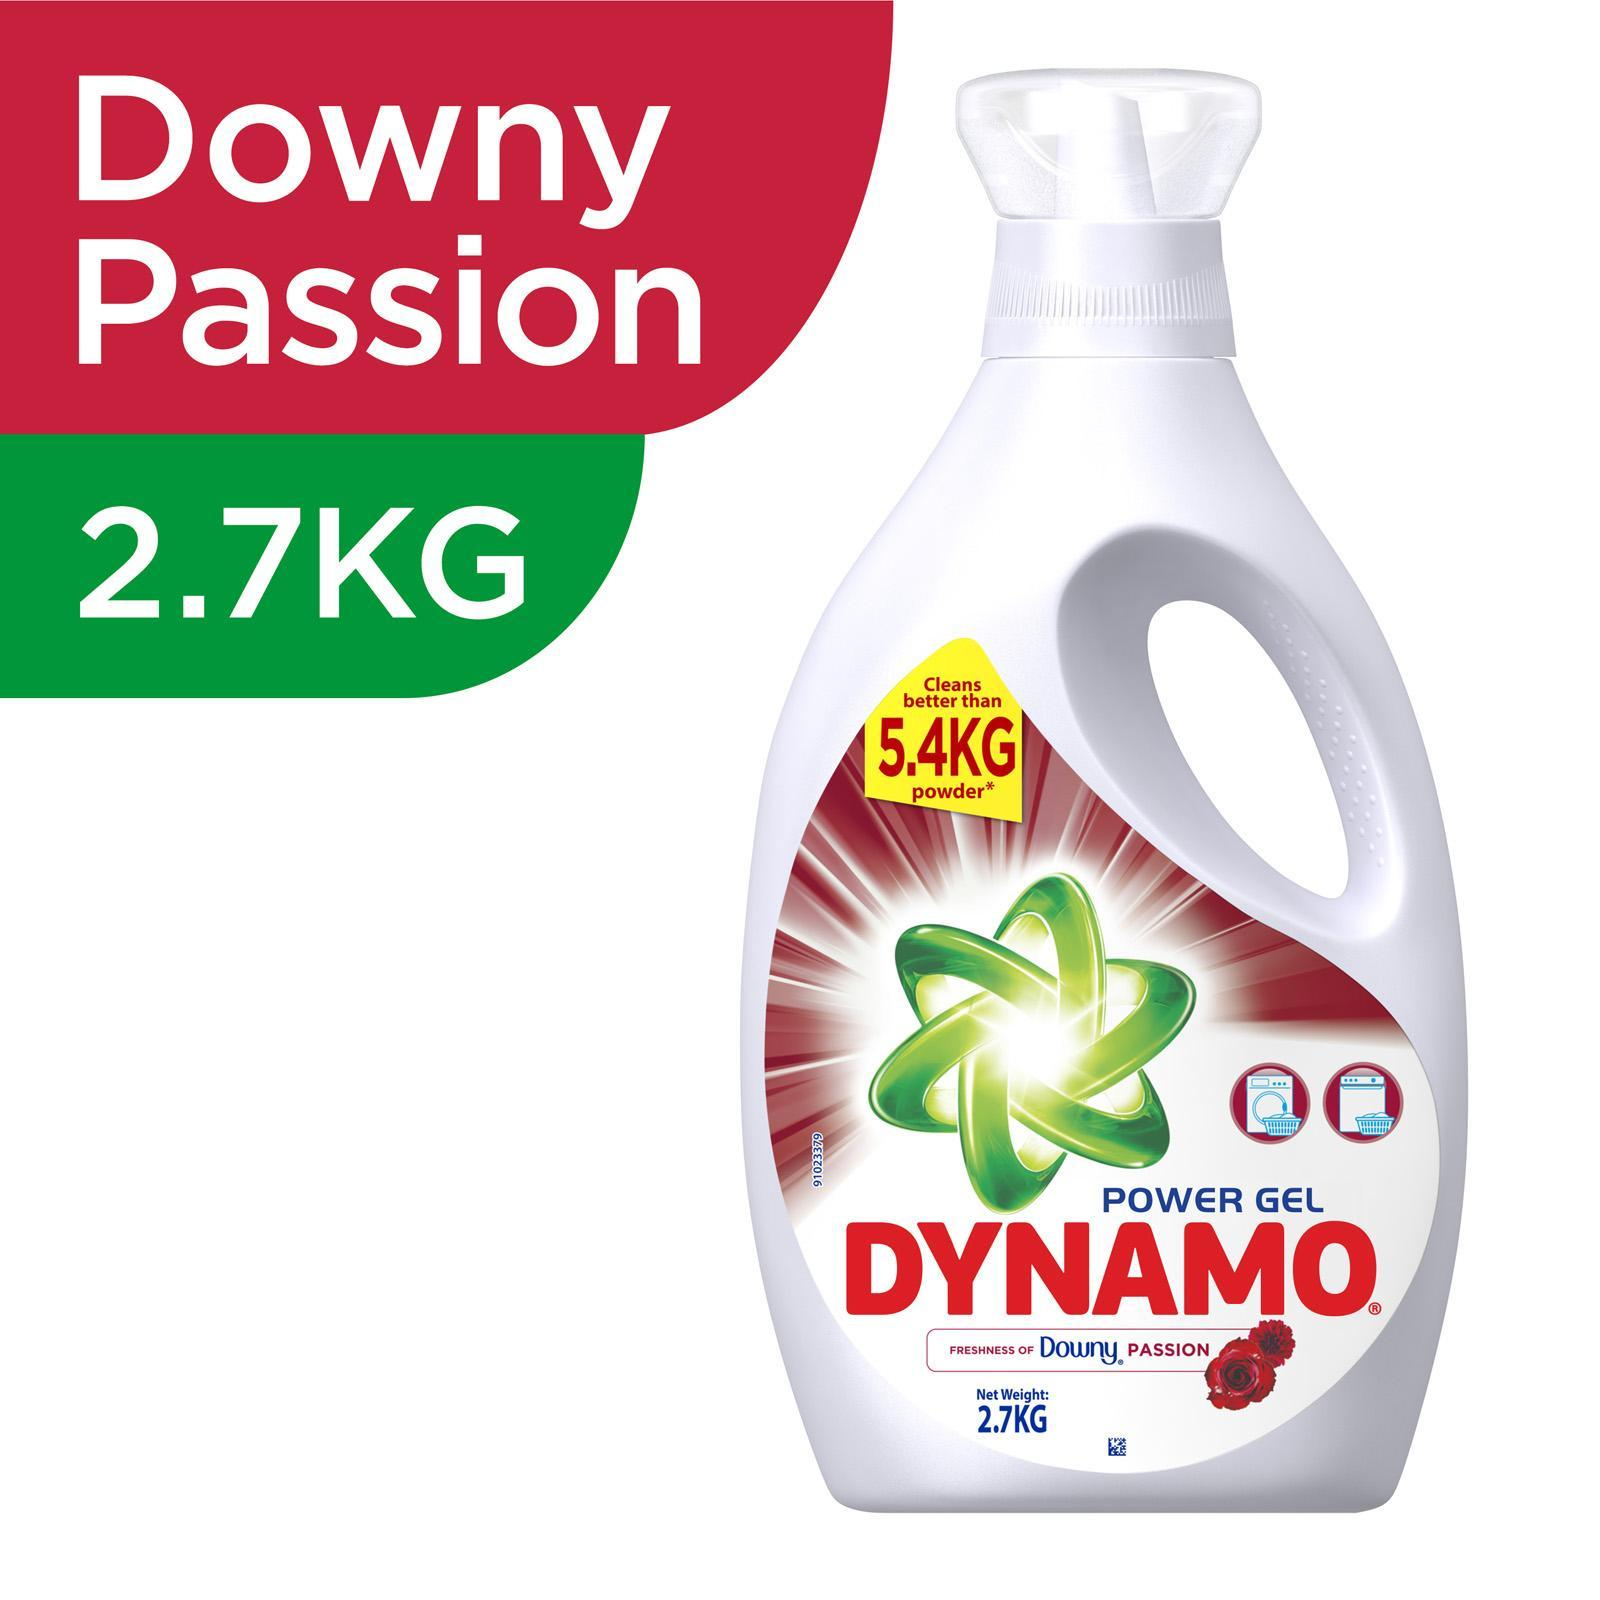 Dynamo Power Gel Freshness of Downy Laundry Detergent